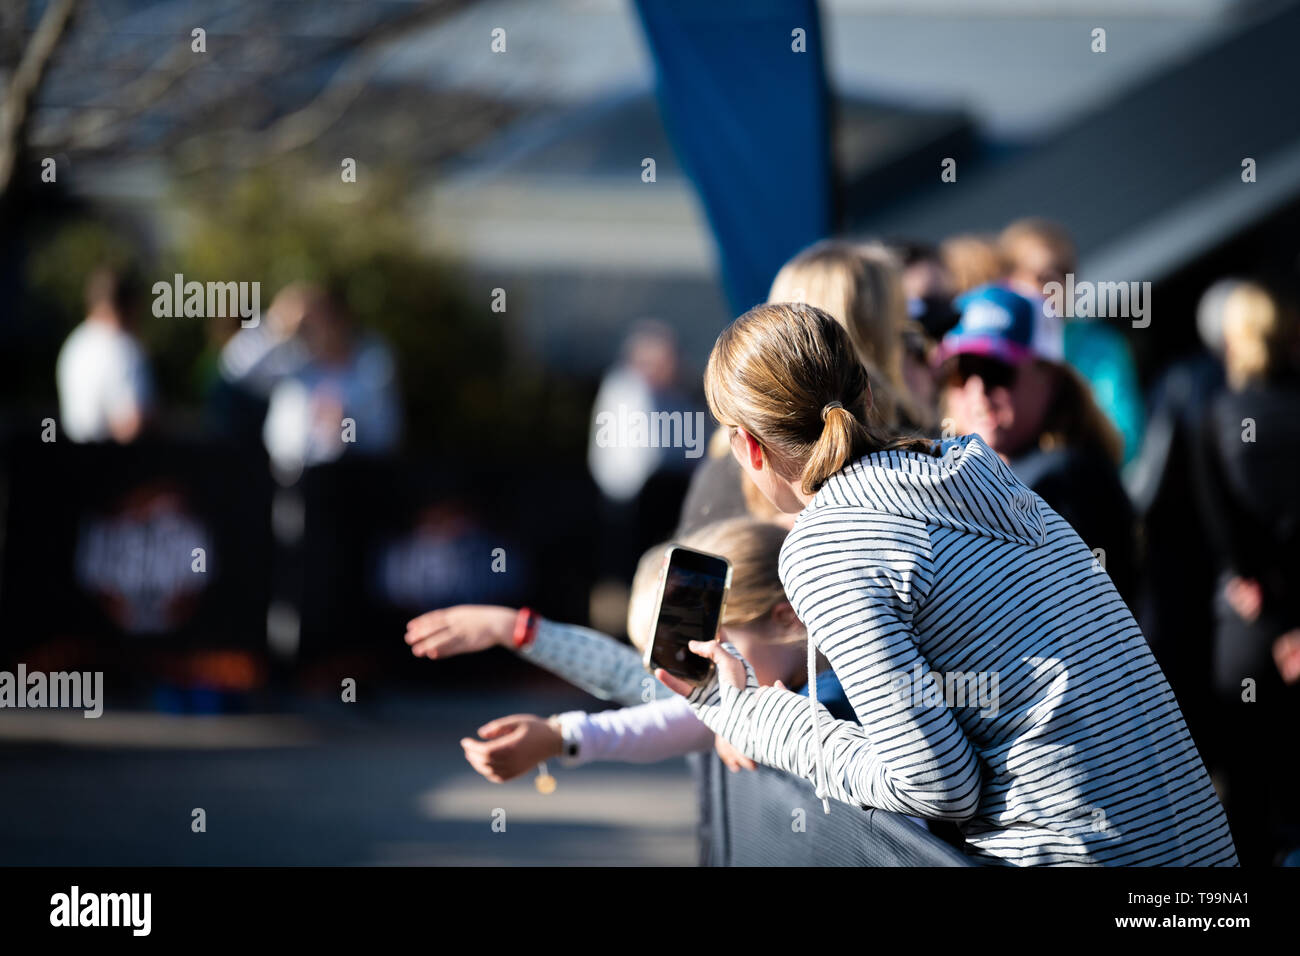 Blue Mountains, Australia - April 16 2019: Ultra-Trail Australia UTA11 race. Crowd watch and wait for runners about to finish on home stretch. - Stock Image